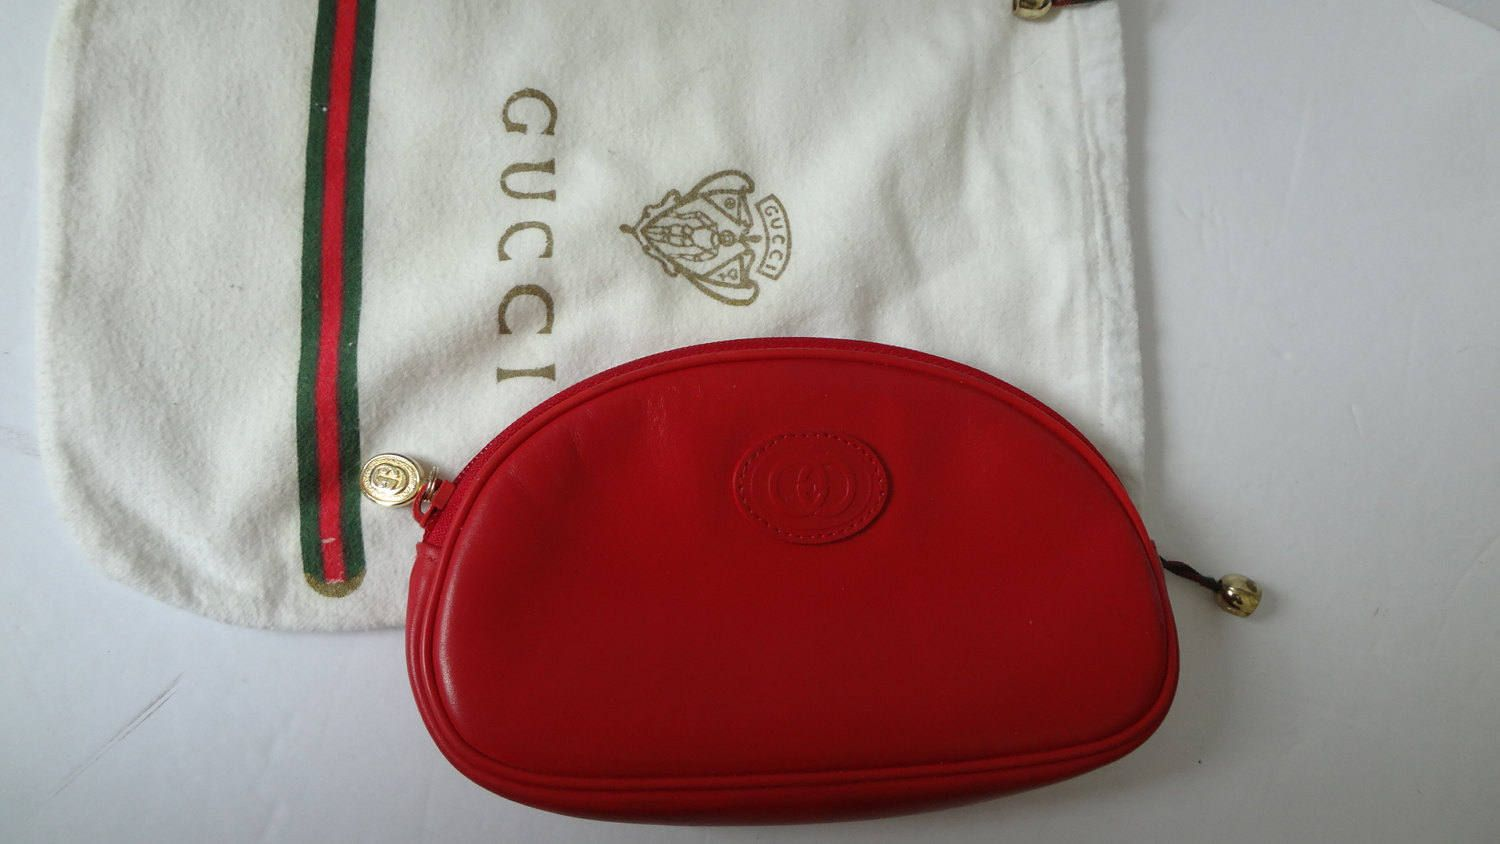 6e1899869 Authentic Vintage GUCCI Cosmetics Makeup Leather Rare Red case Pouch  w/dustbag Pochette bag handbag clutch by DoorstepFashions on Etsy